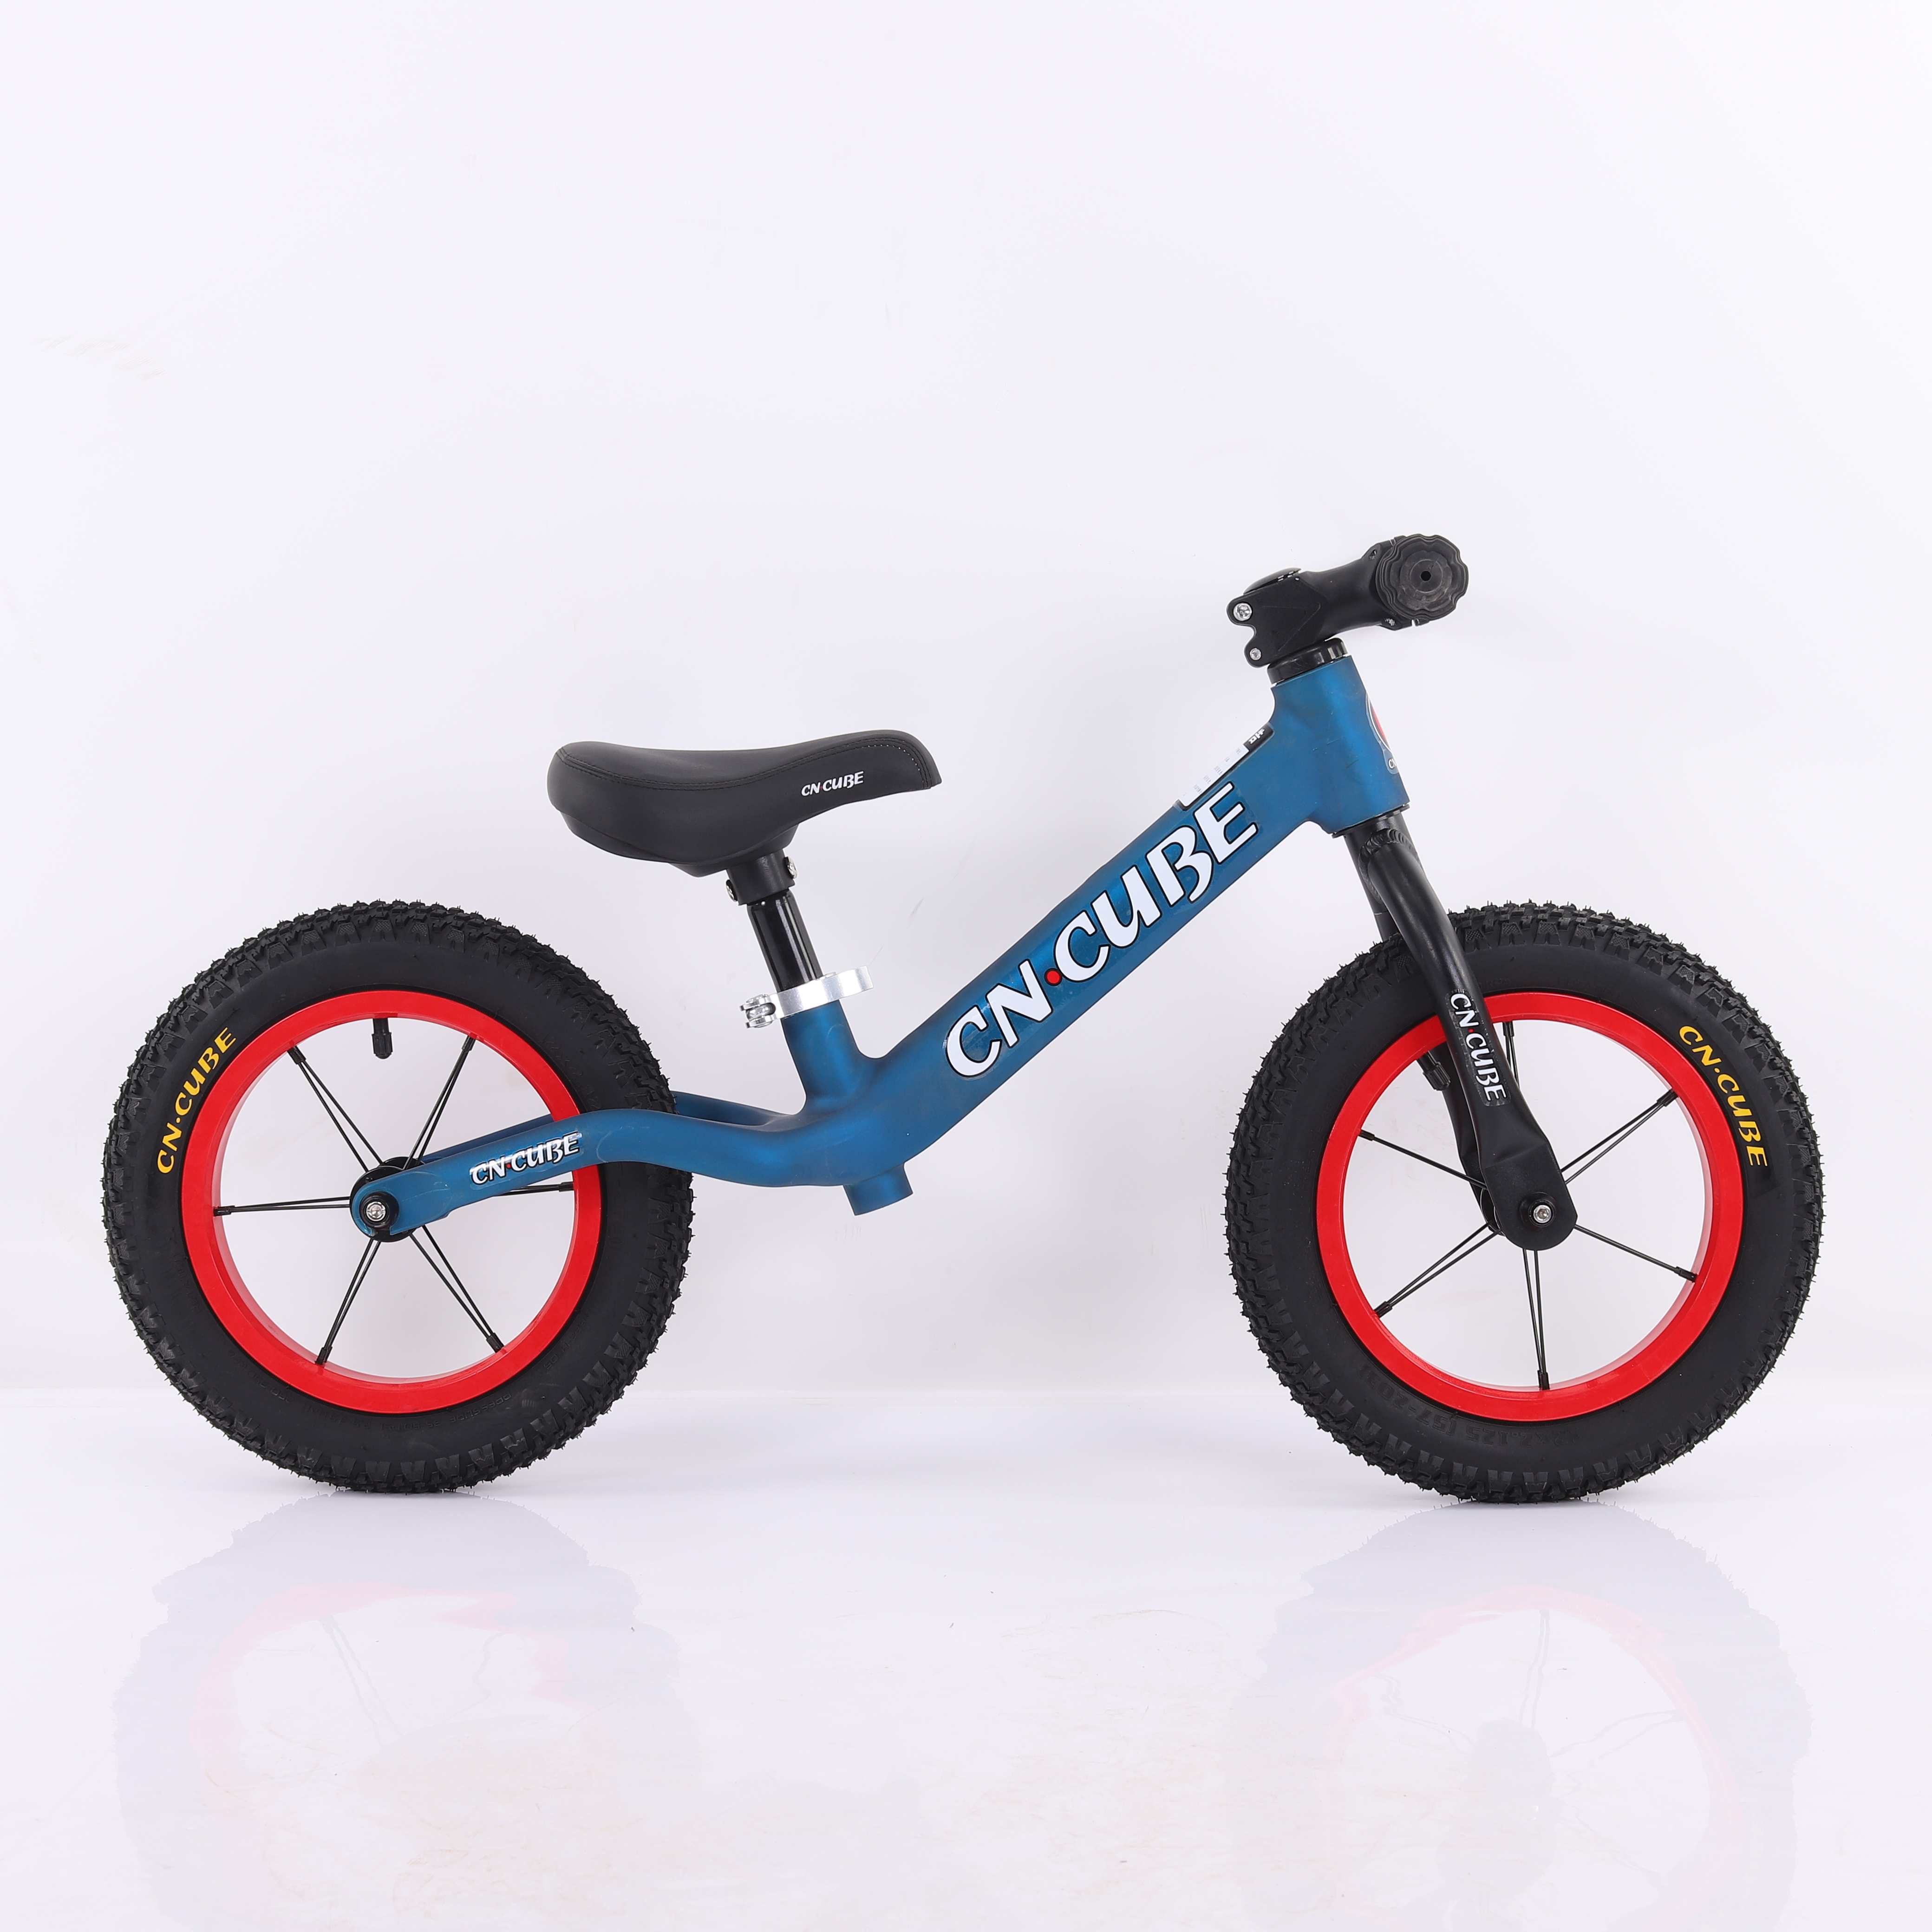 Aluminum Lightweight Toys for Toddlers and Kids Balance Bike Bicycle